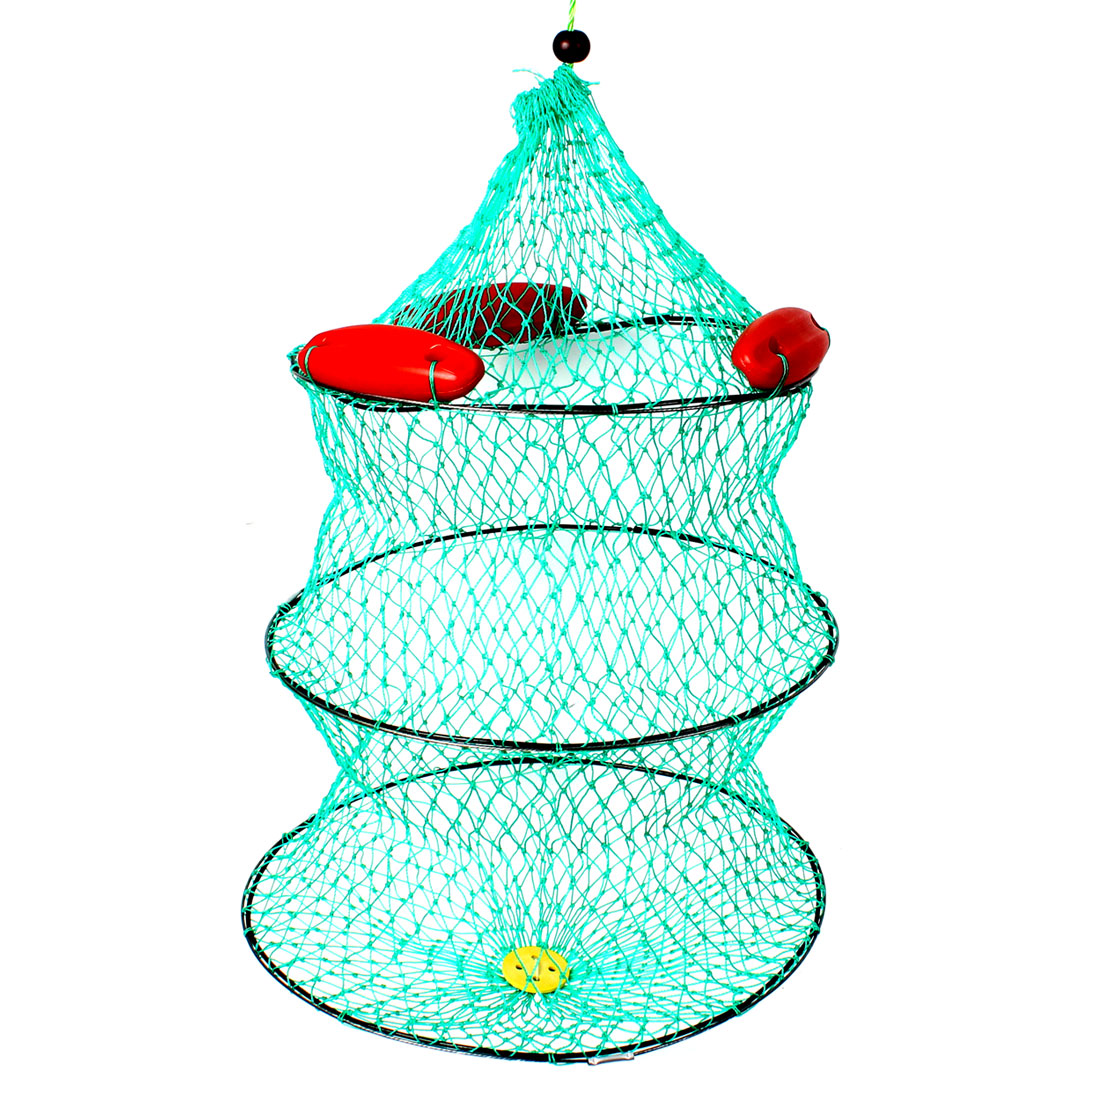 Lobster Crab Crawfish Shrimp Cage Fishing Keep Net Green Red